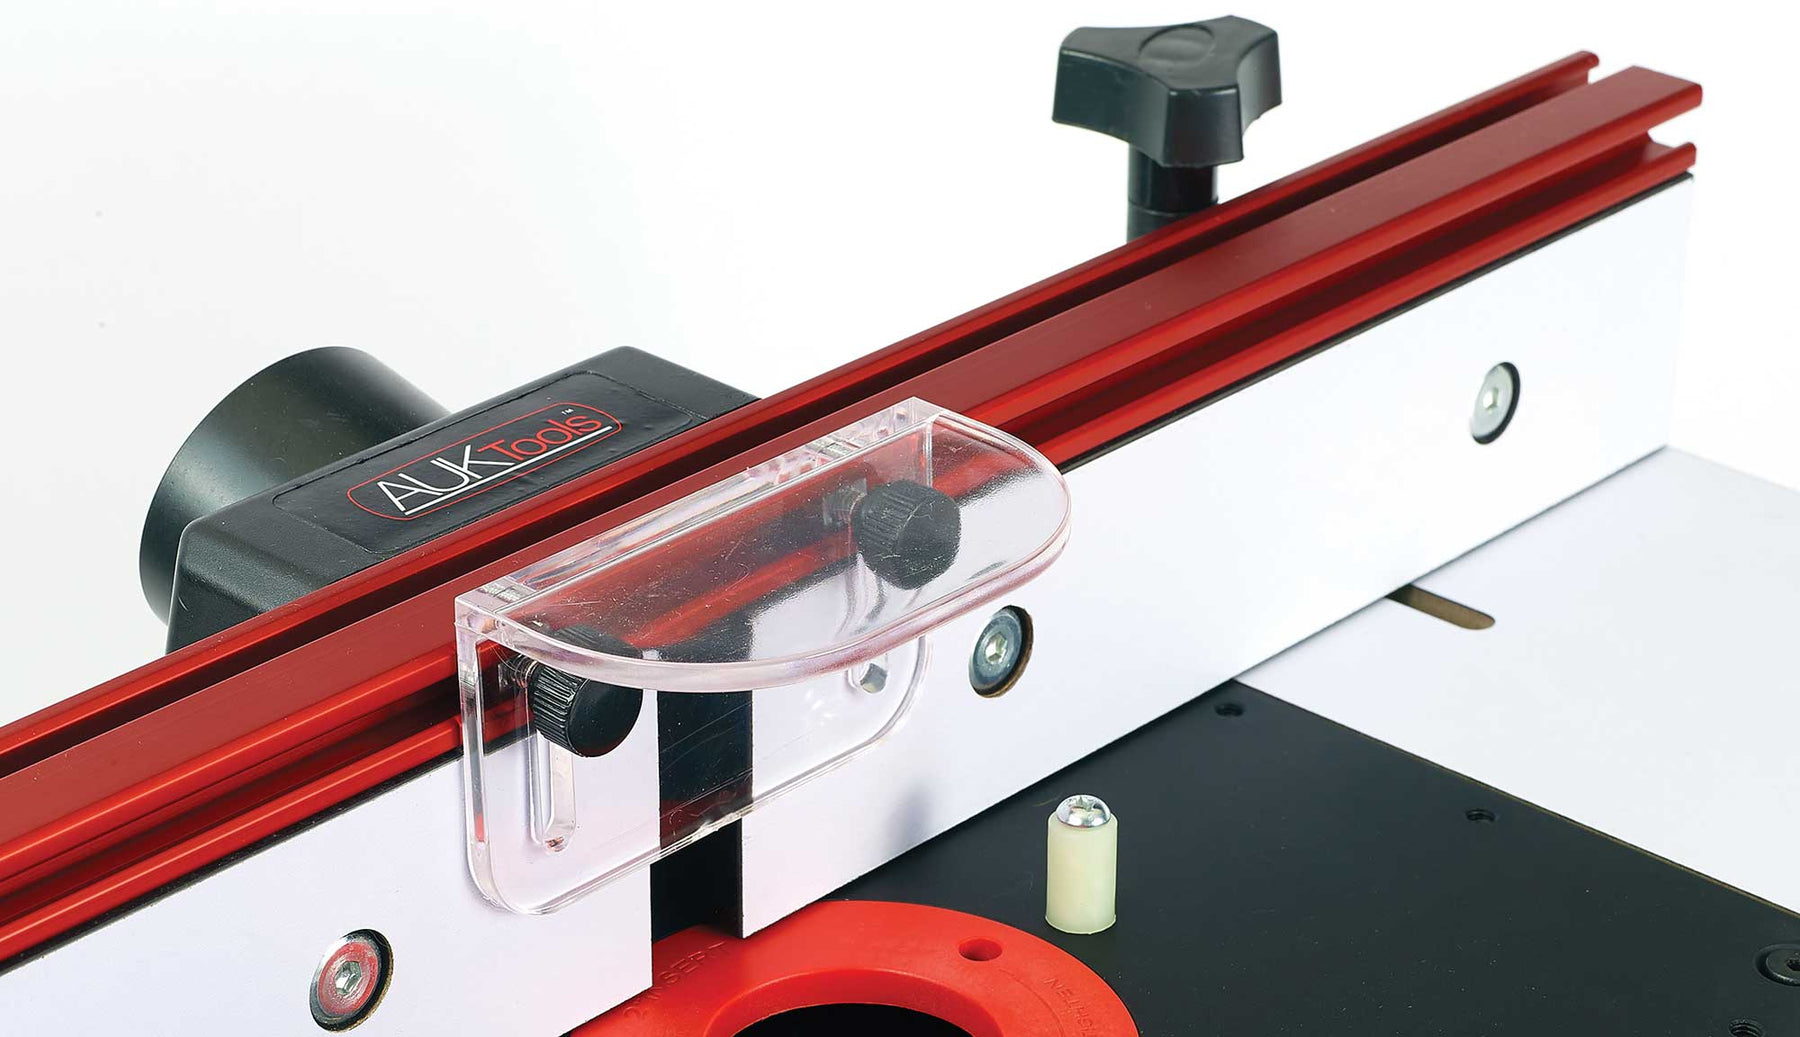 AUKTools Bench Top Router Review, The Woodworker Magazine